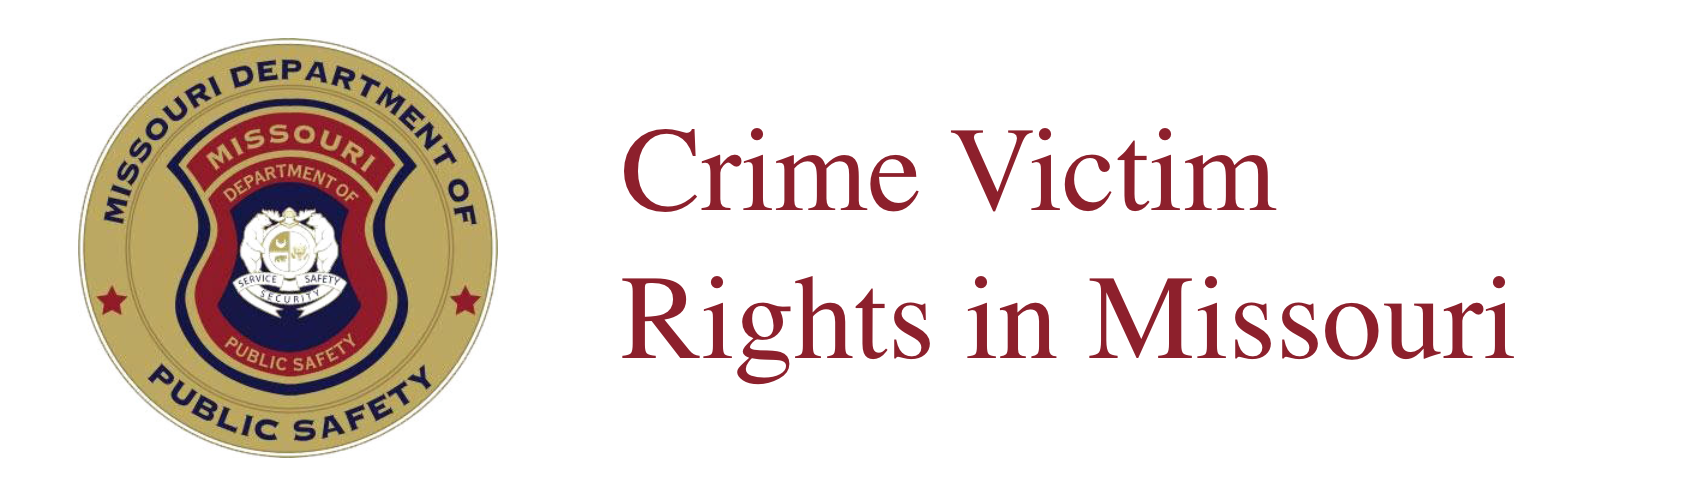 Crime Victim Rights MO.png